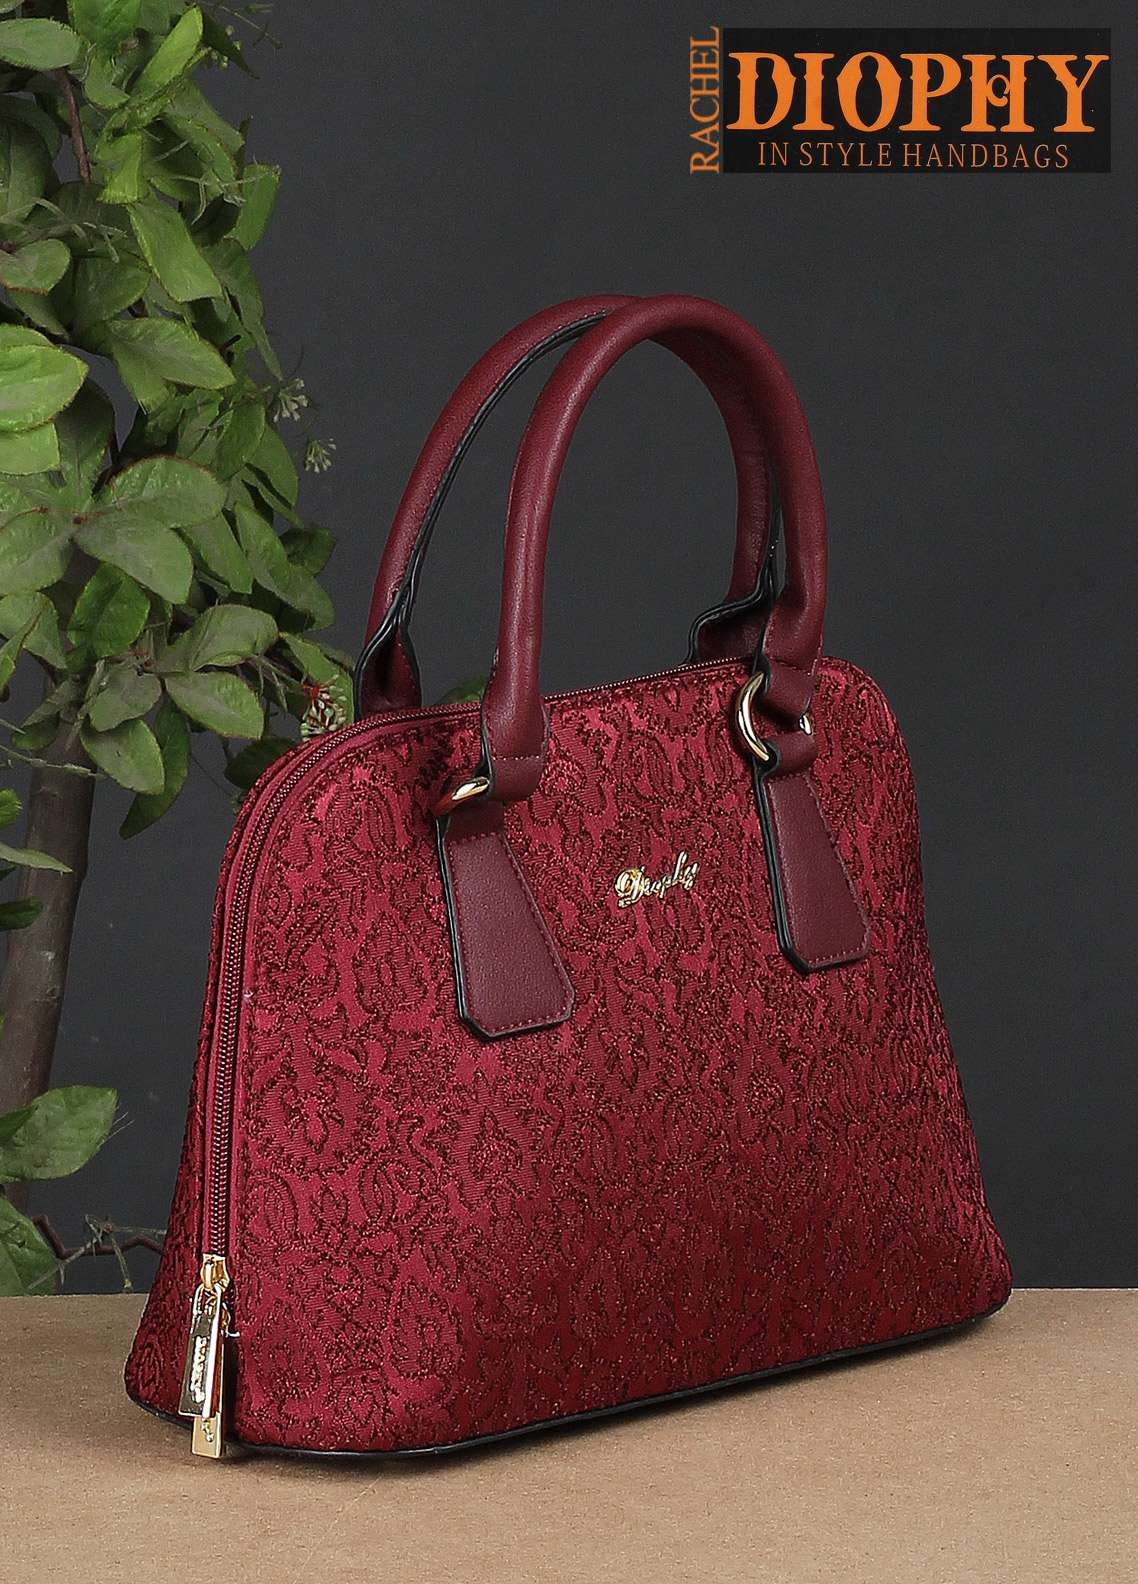 Rachel Diophy PU Leather Satchels Handbags for Women - Maroon with Embroidered Textured